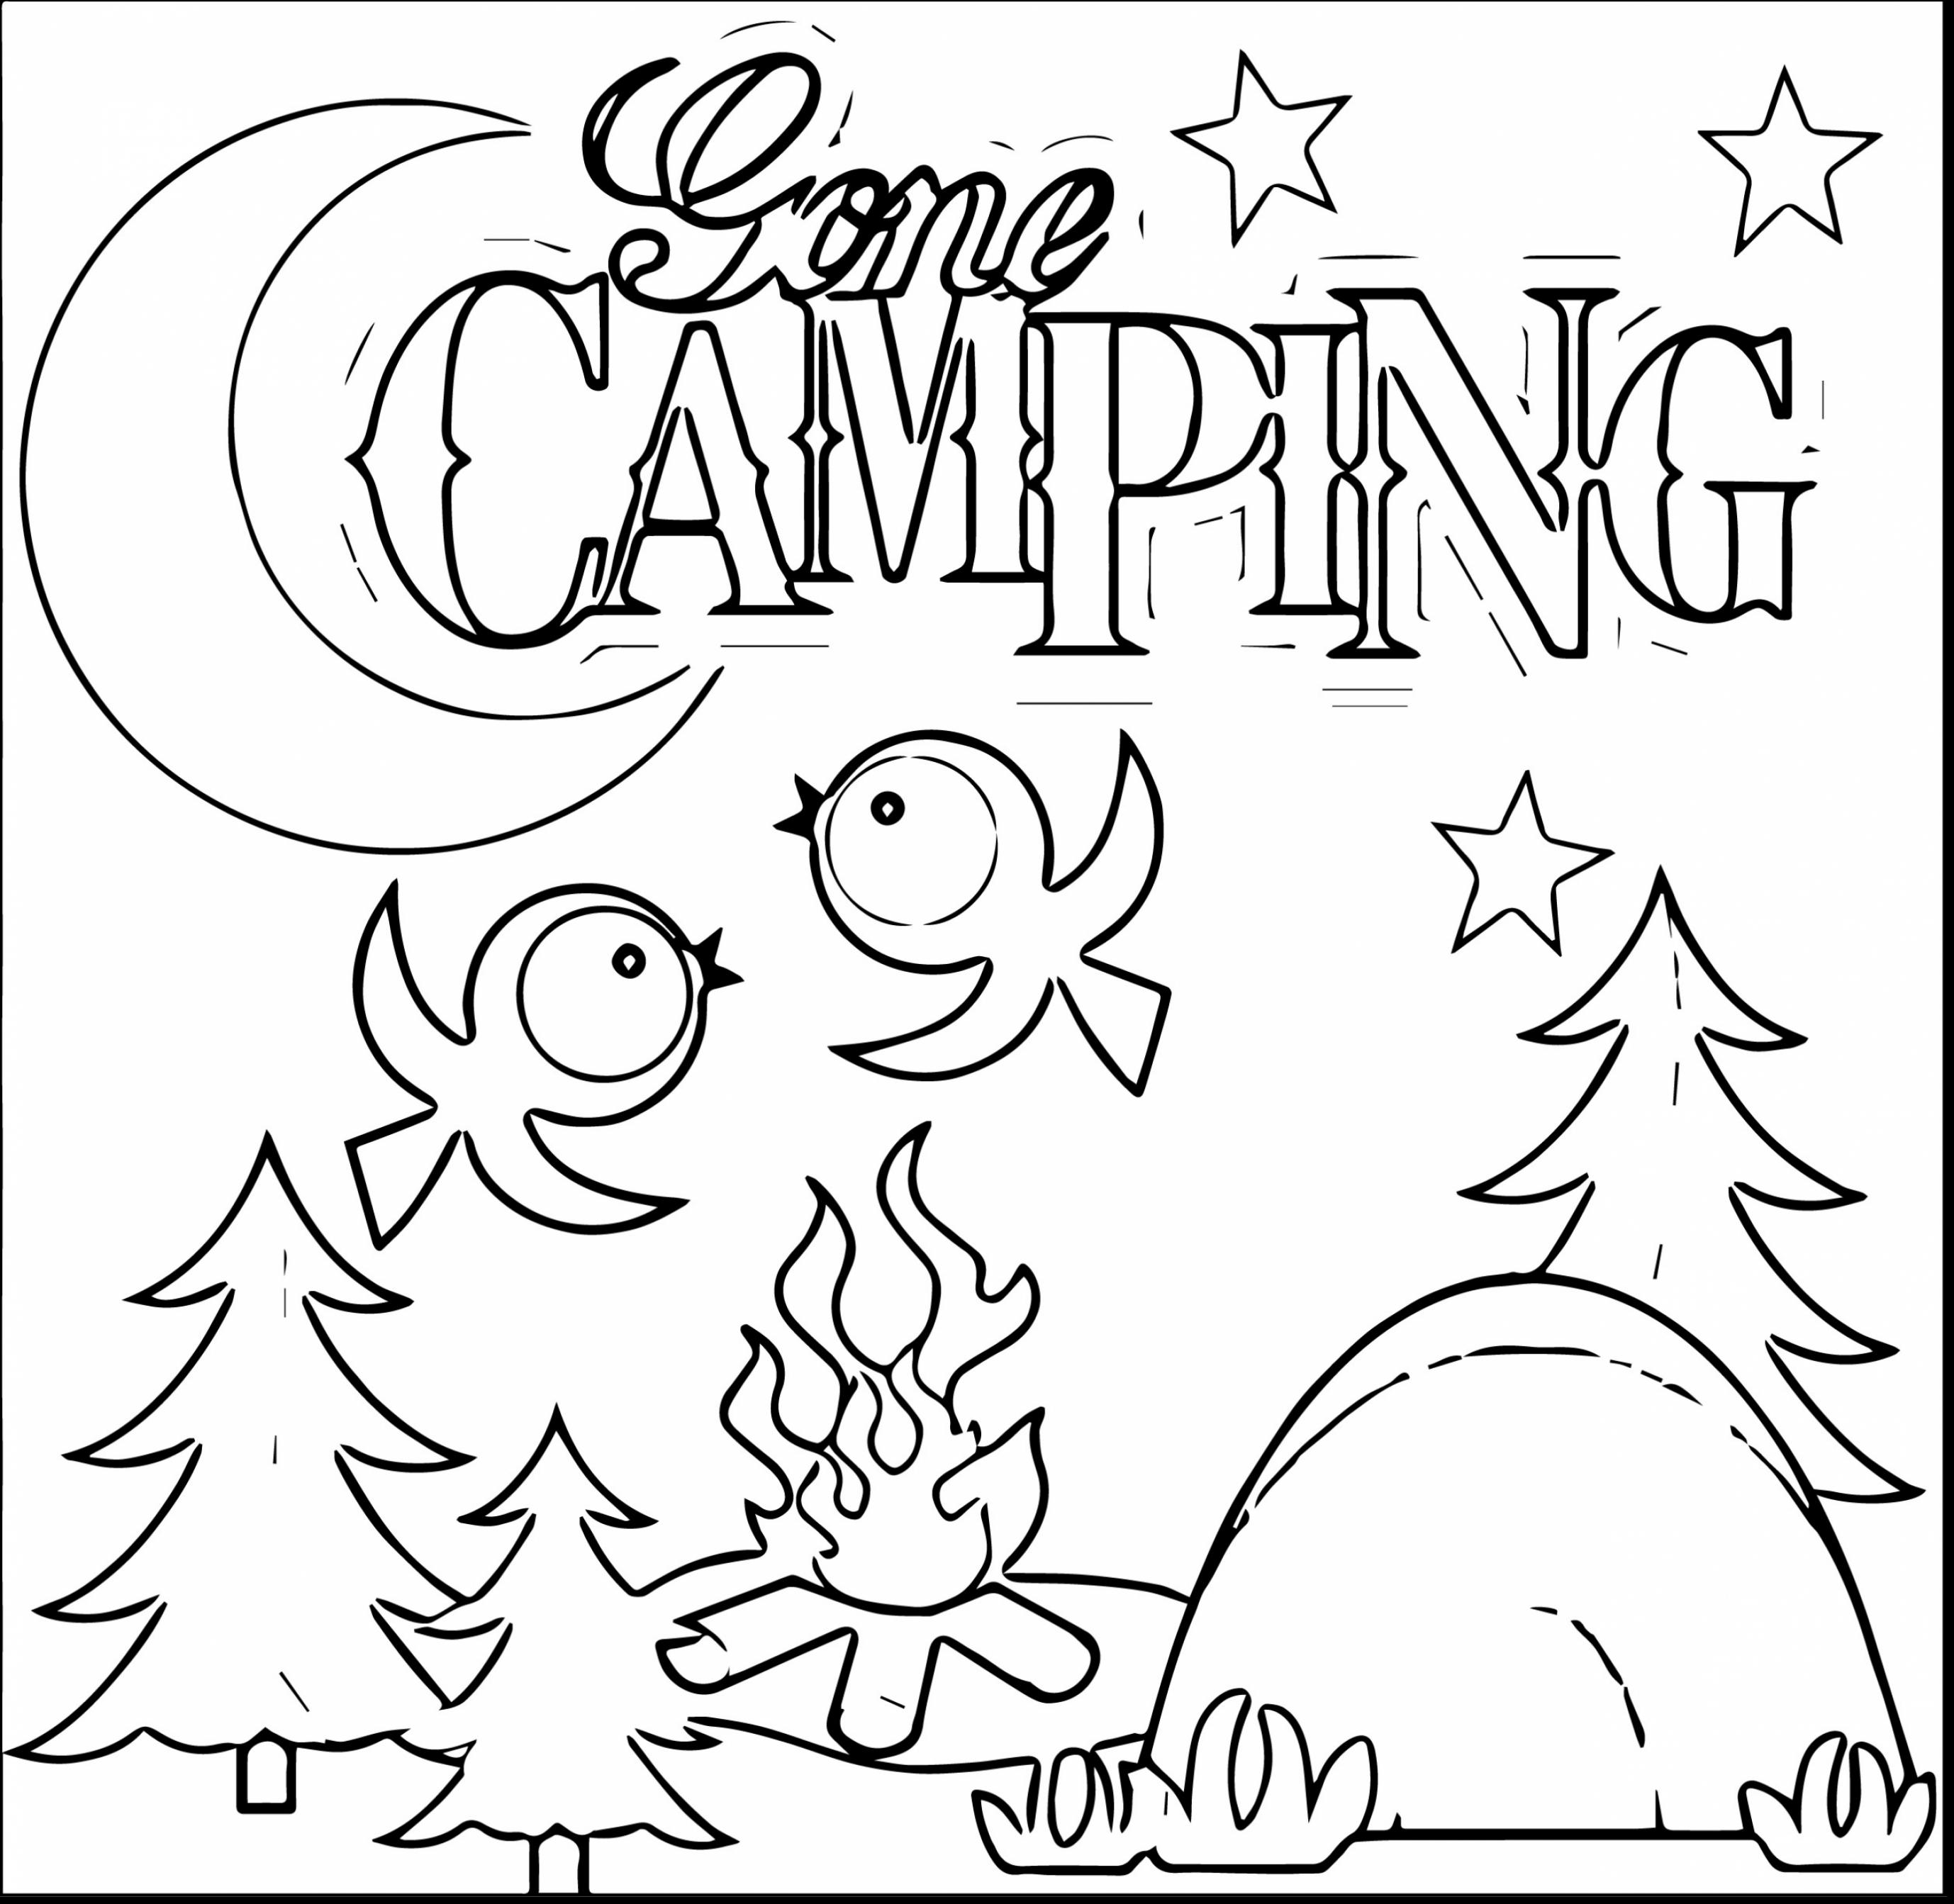 camping coloring pages for preschoolers free preschool camping cliparts download free clip art coloring for preschoolers camping pages